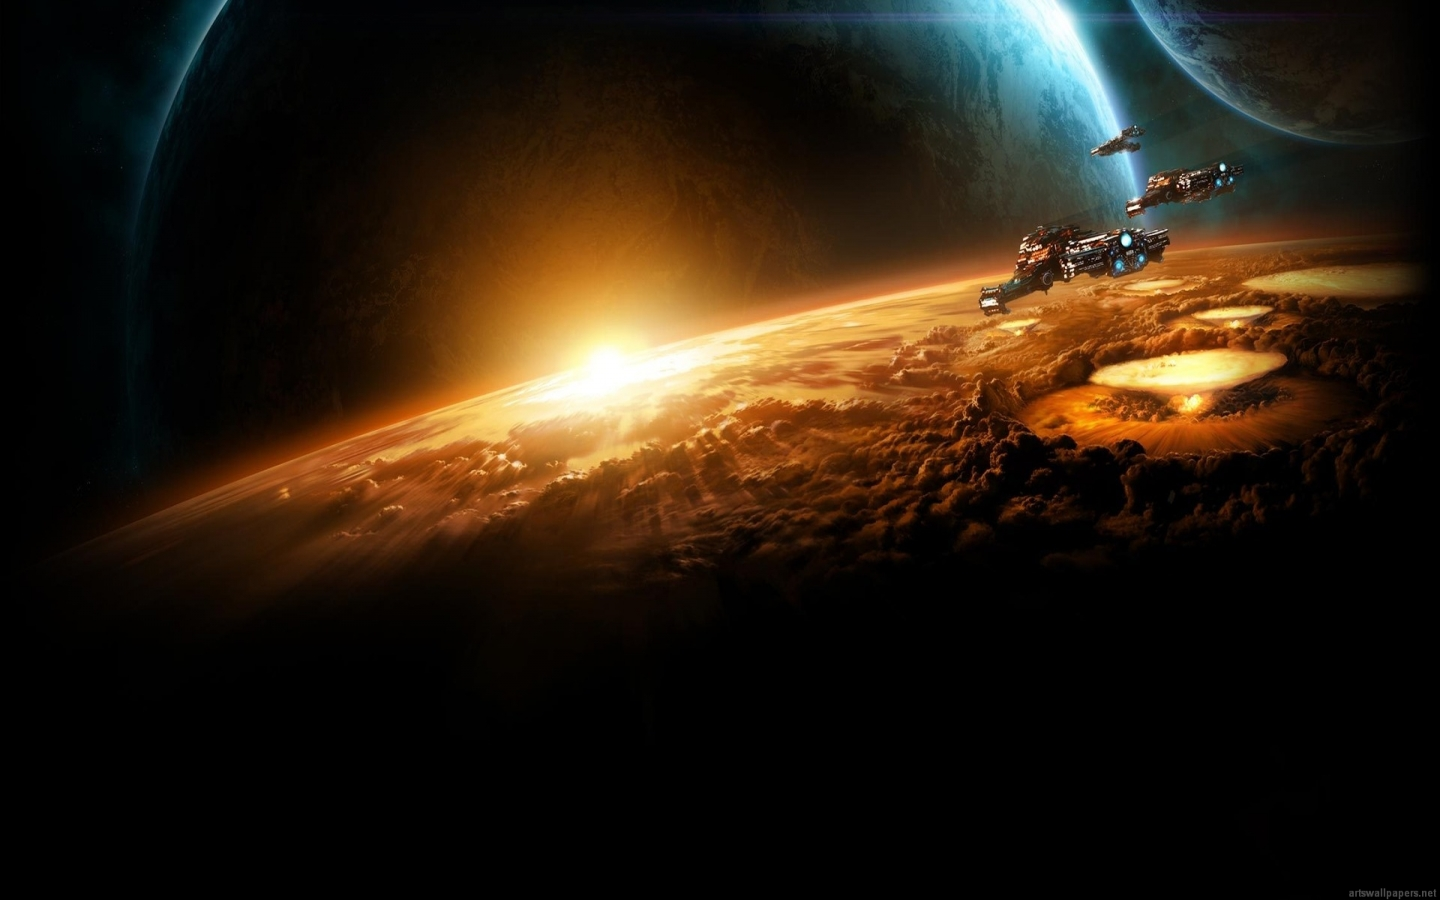 Full hd 3d wallpapers wallpapersafari - Videoprojecteur full hd 3d ...